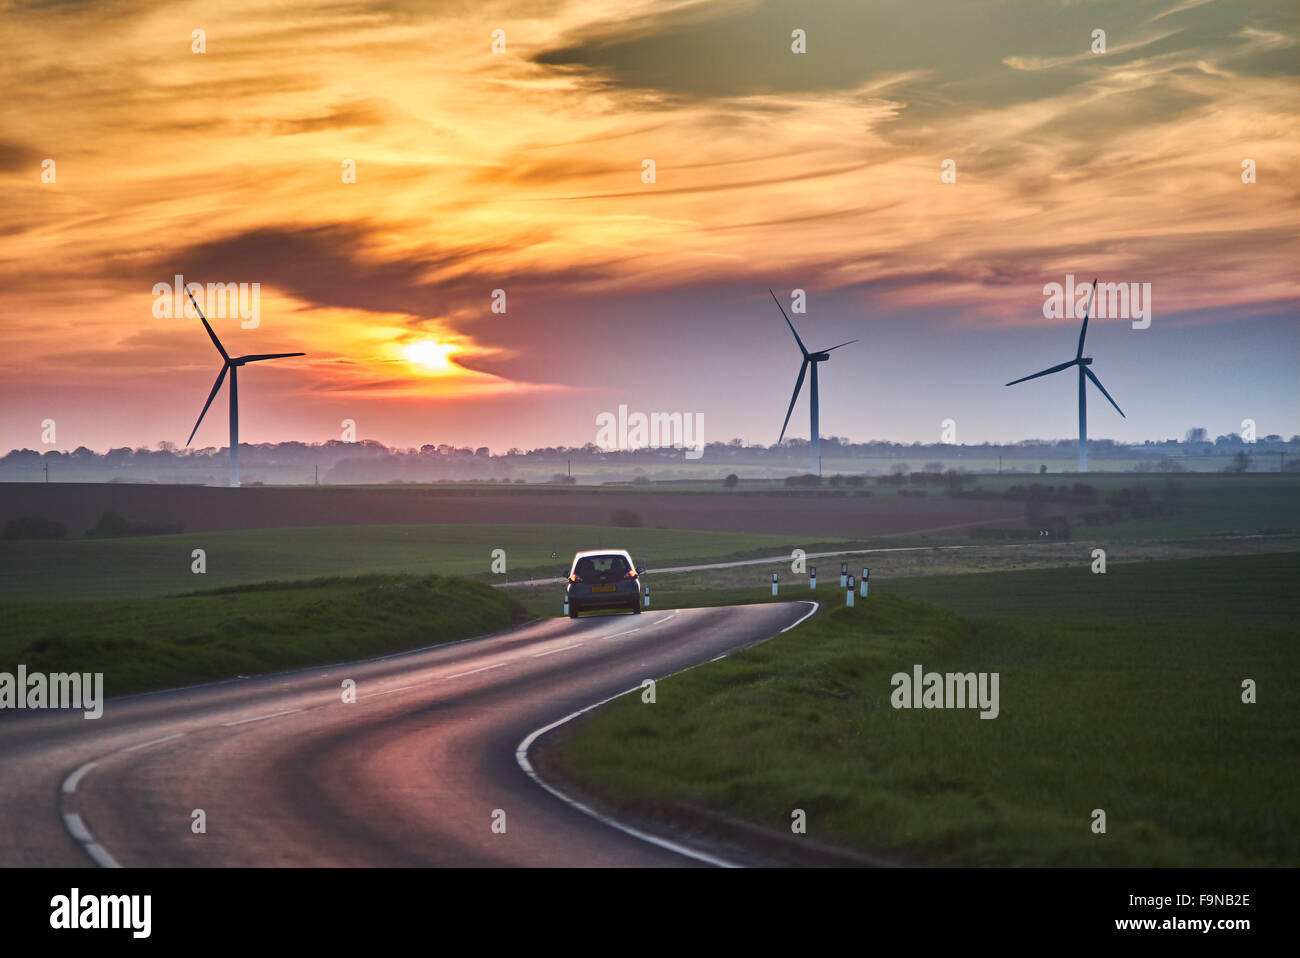 Wind turbines at a wind farm on farm land in Yorkshire during a summer sunset - Stock Image